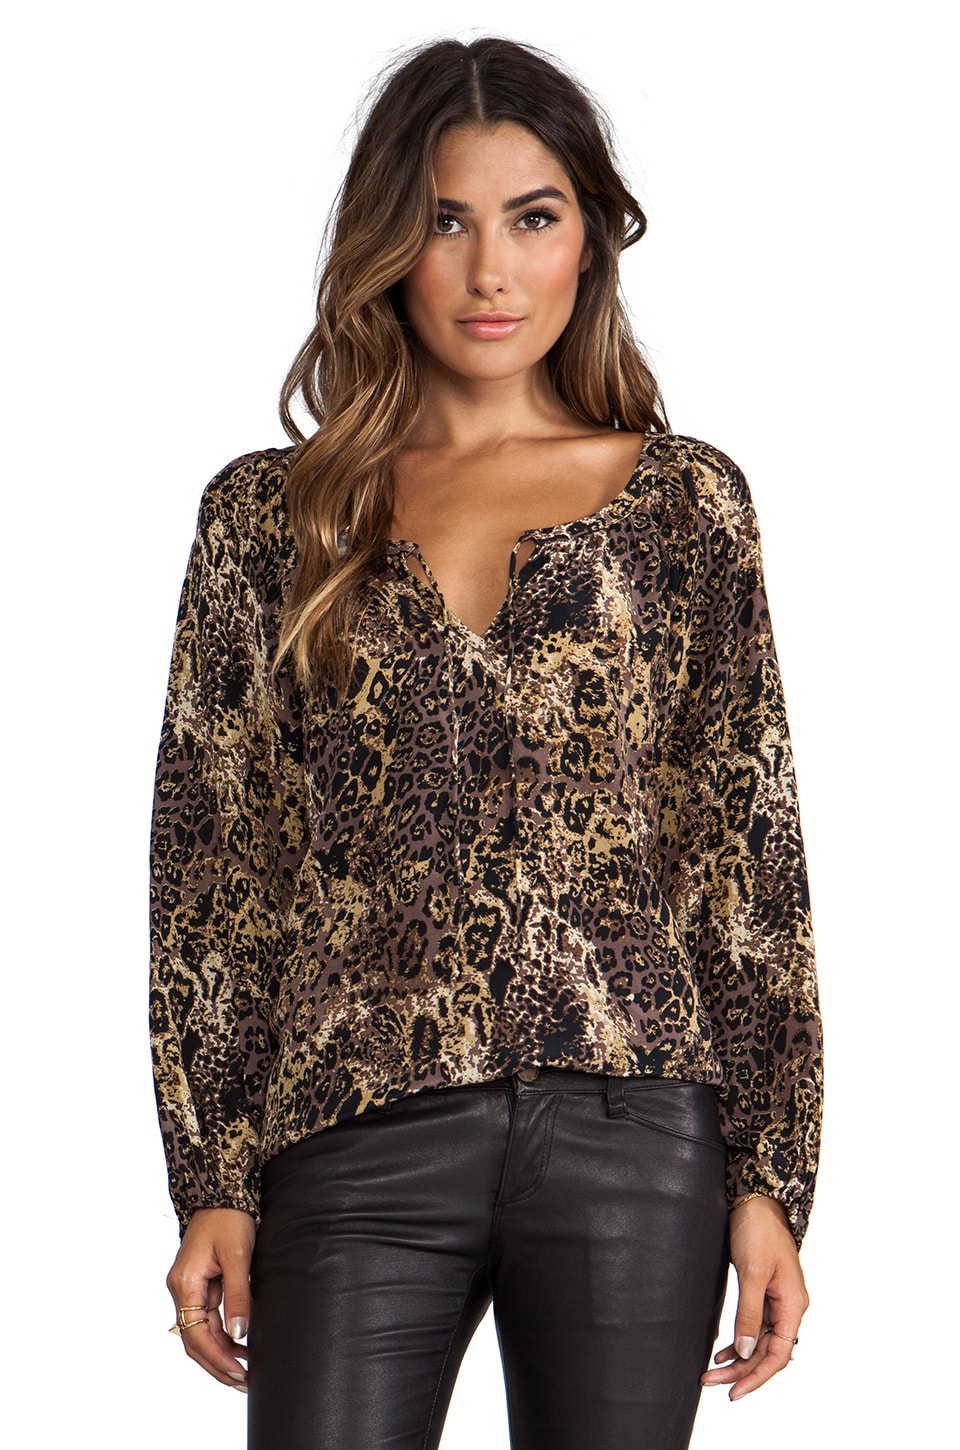 Tolani EXCLUSIVE Pamela Blouse in Brown Leopard